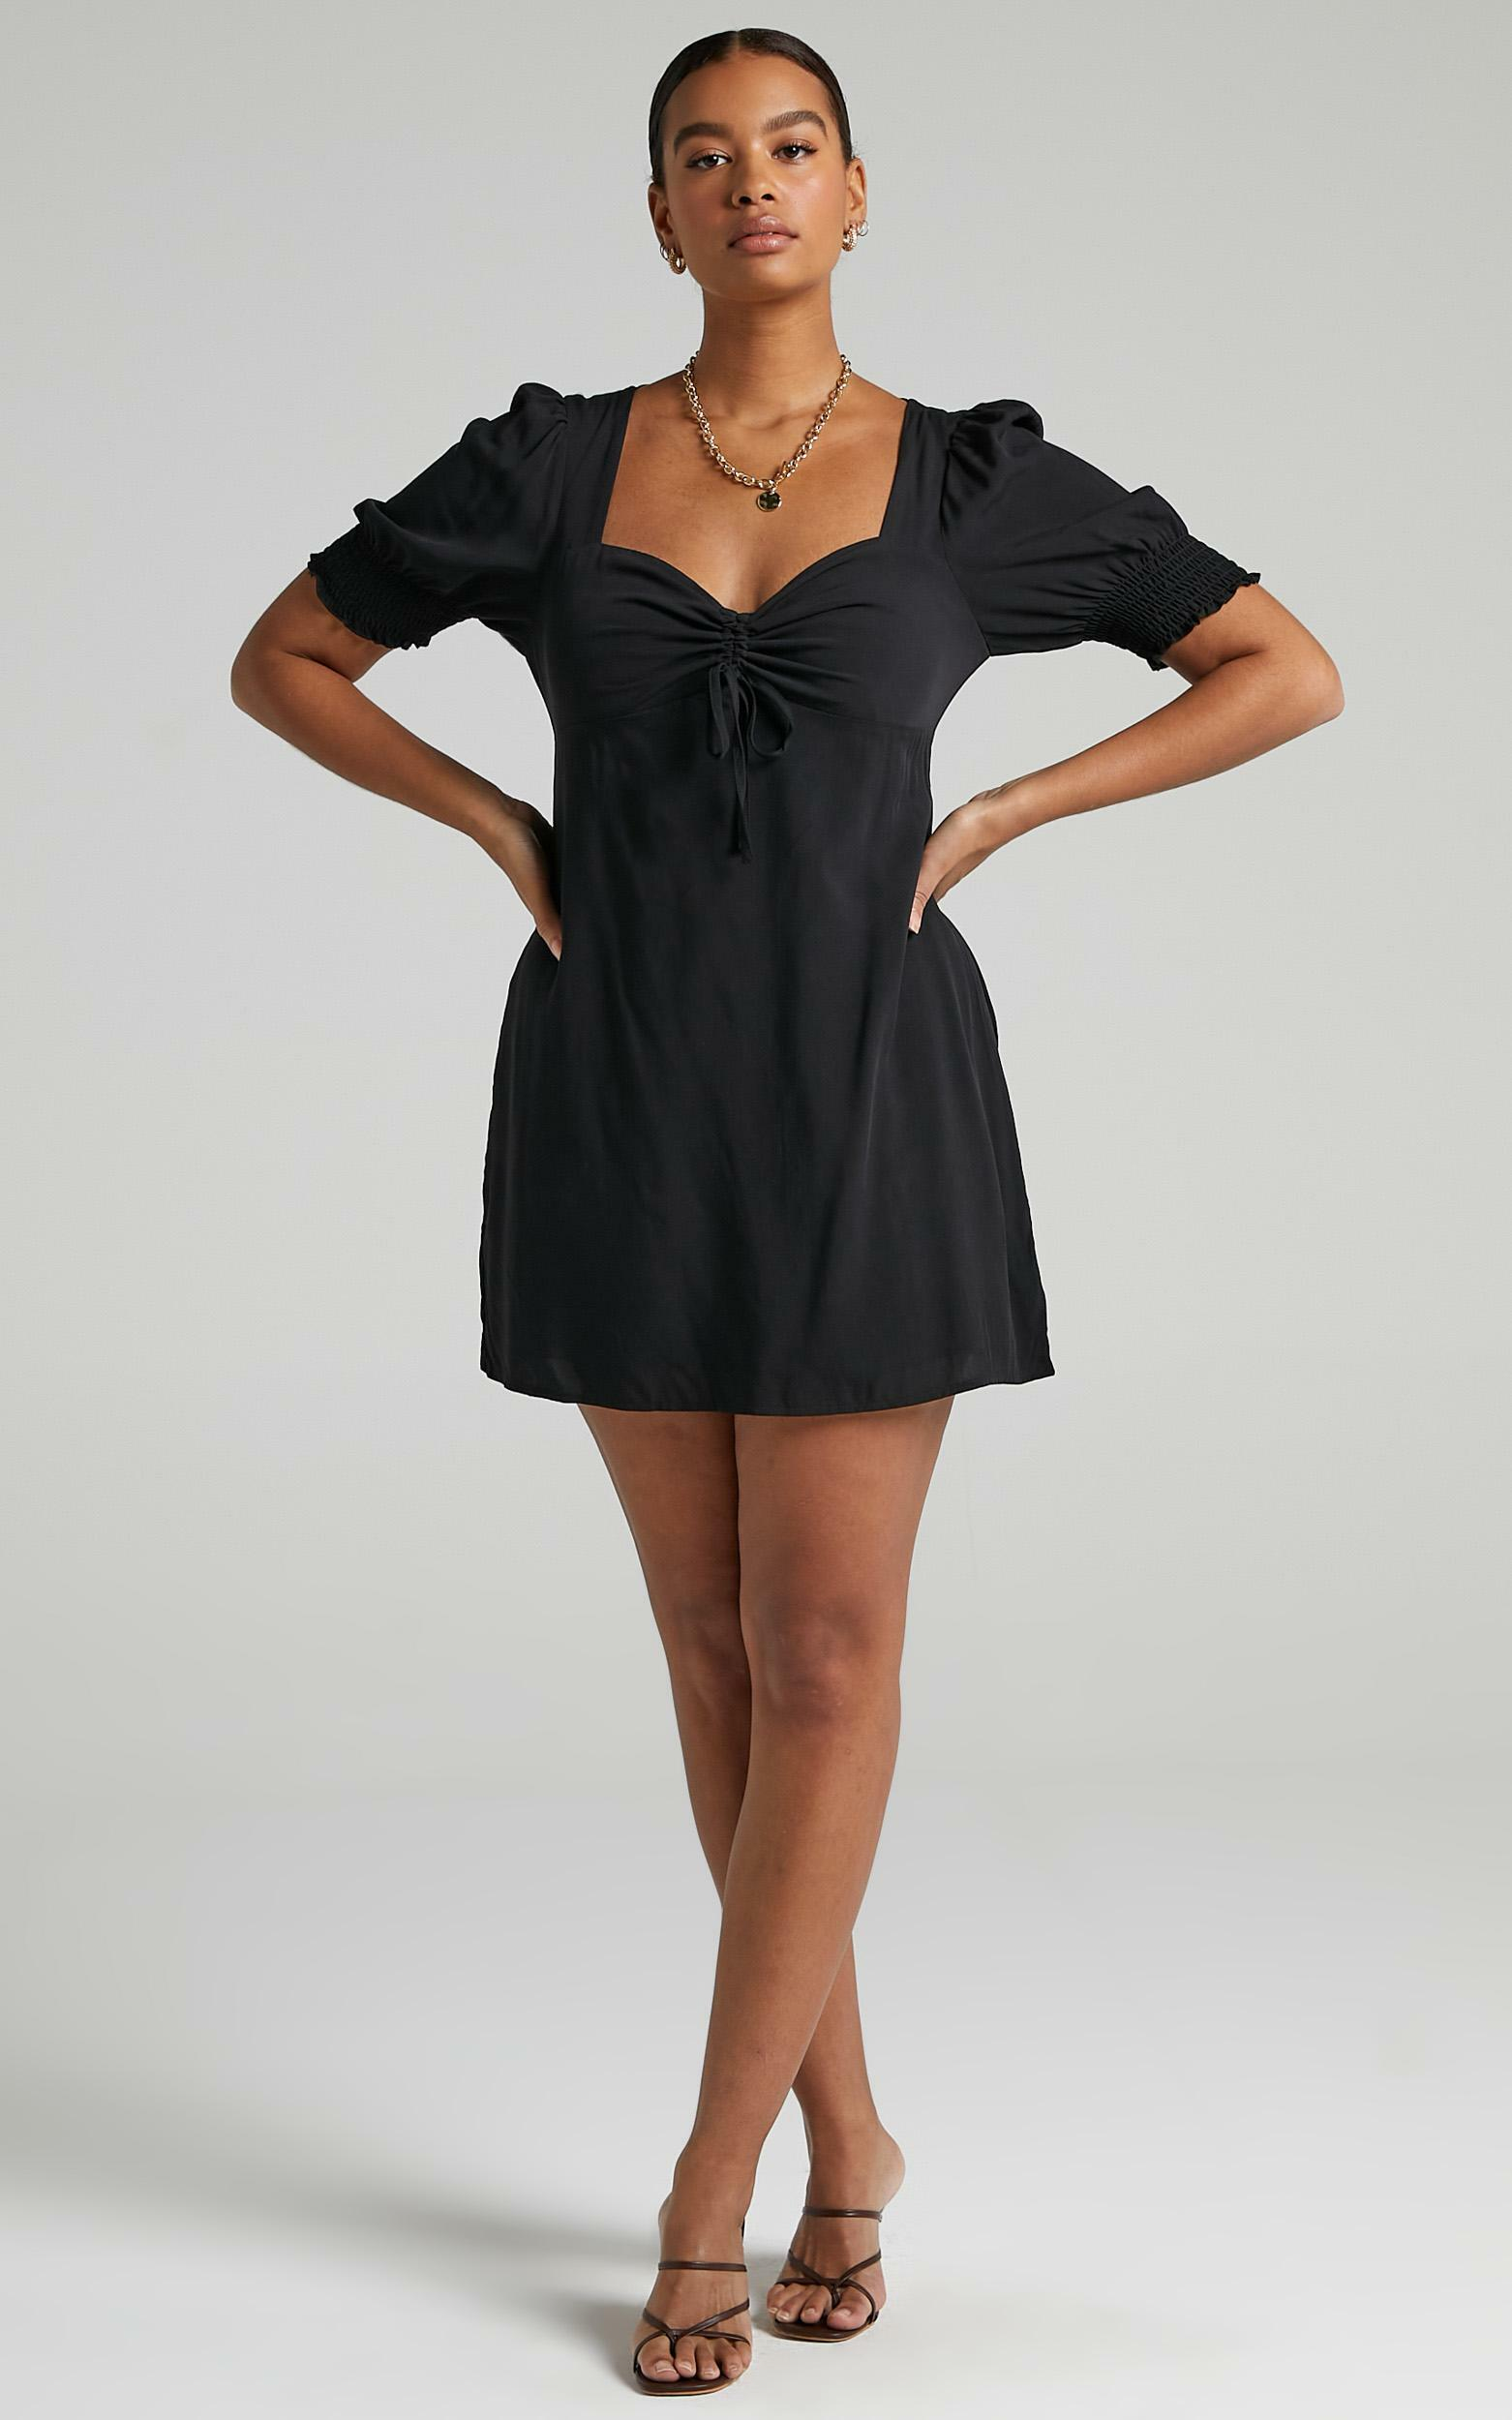 Titania Dress in Black Rayon - 04, BLK1, hi-res image number null